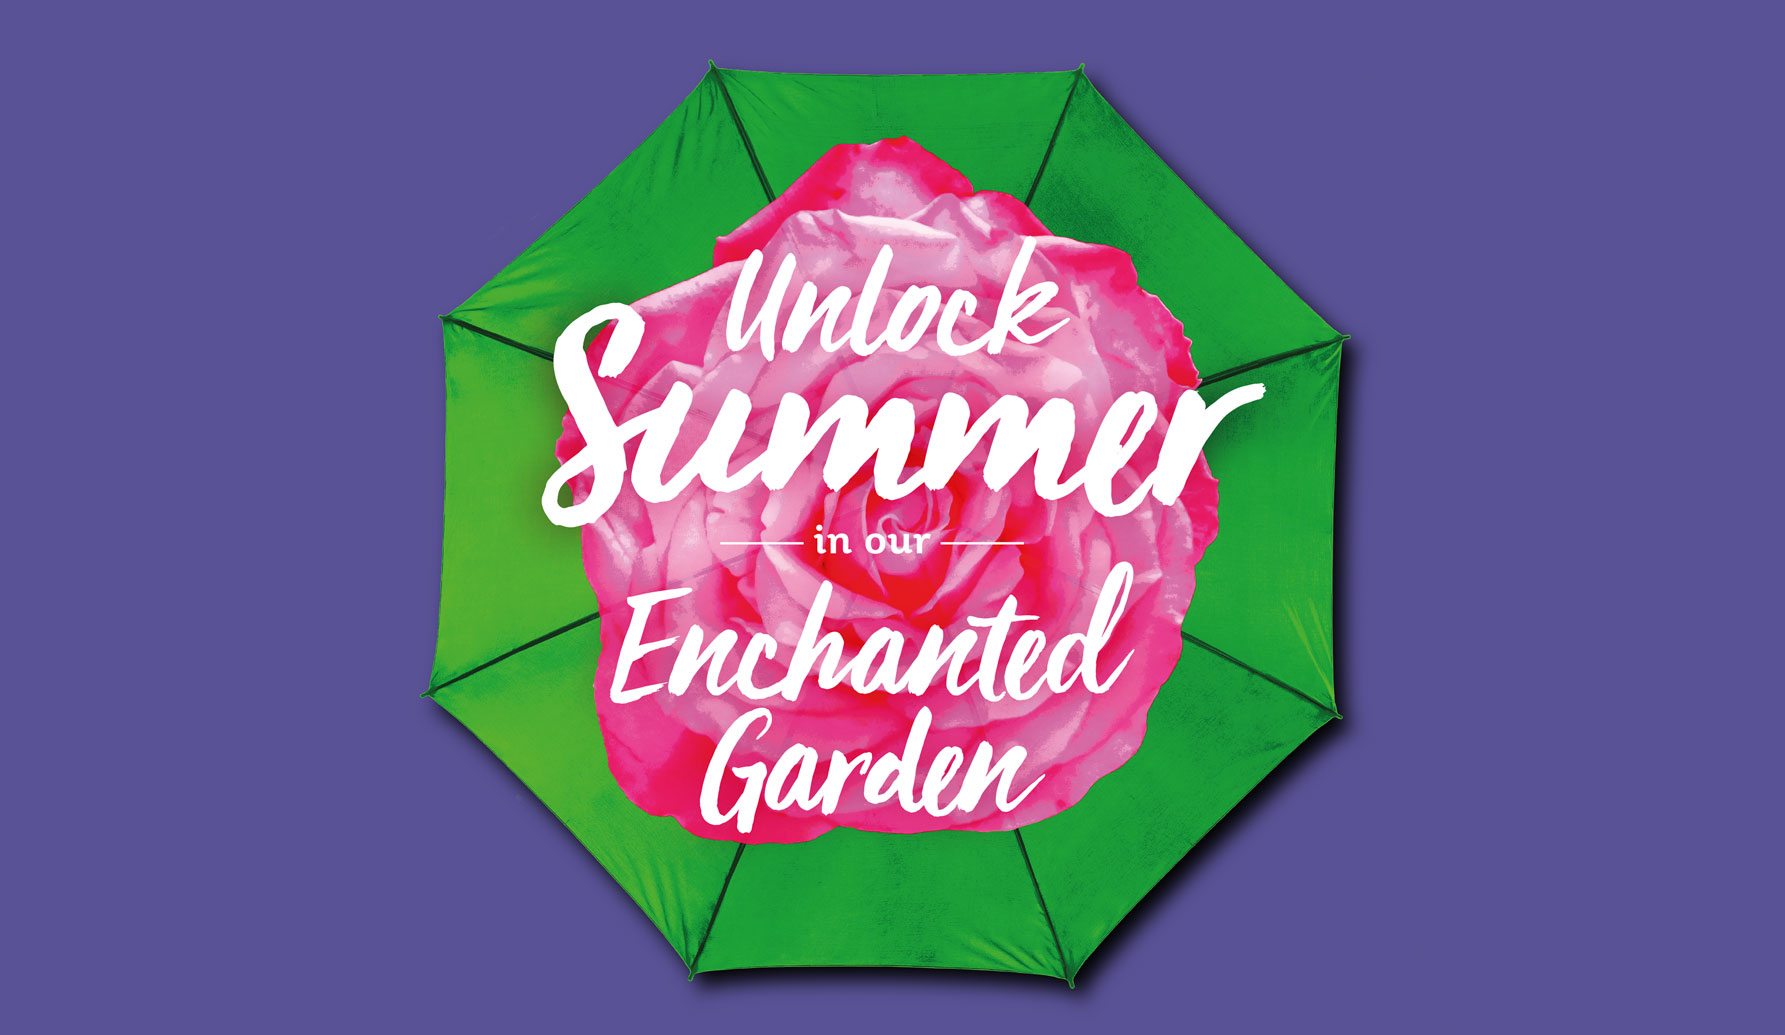 Enchanted Garden Campaign